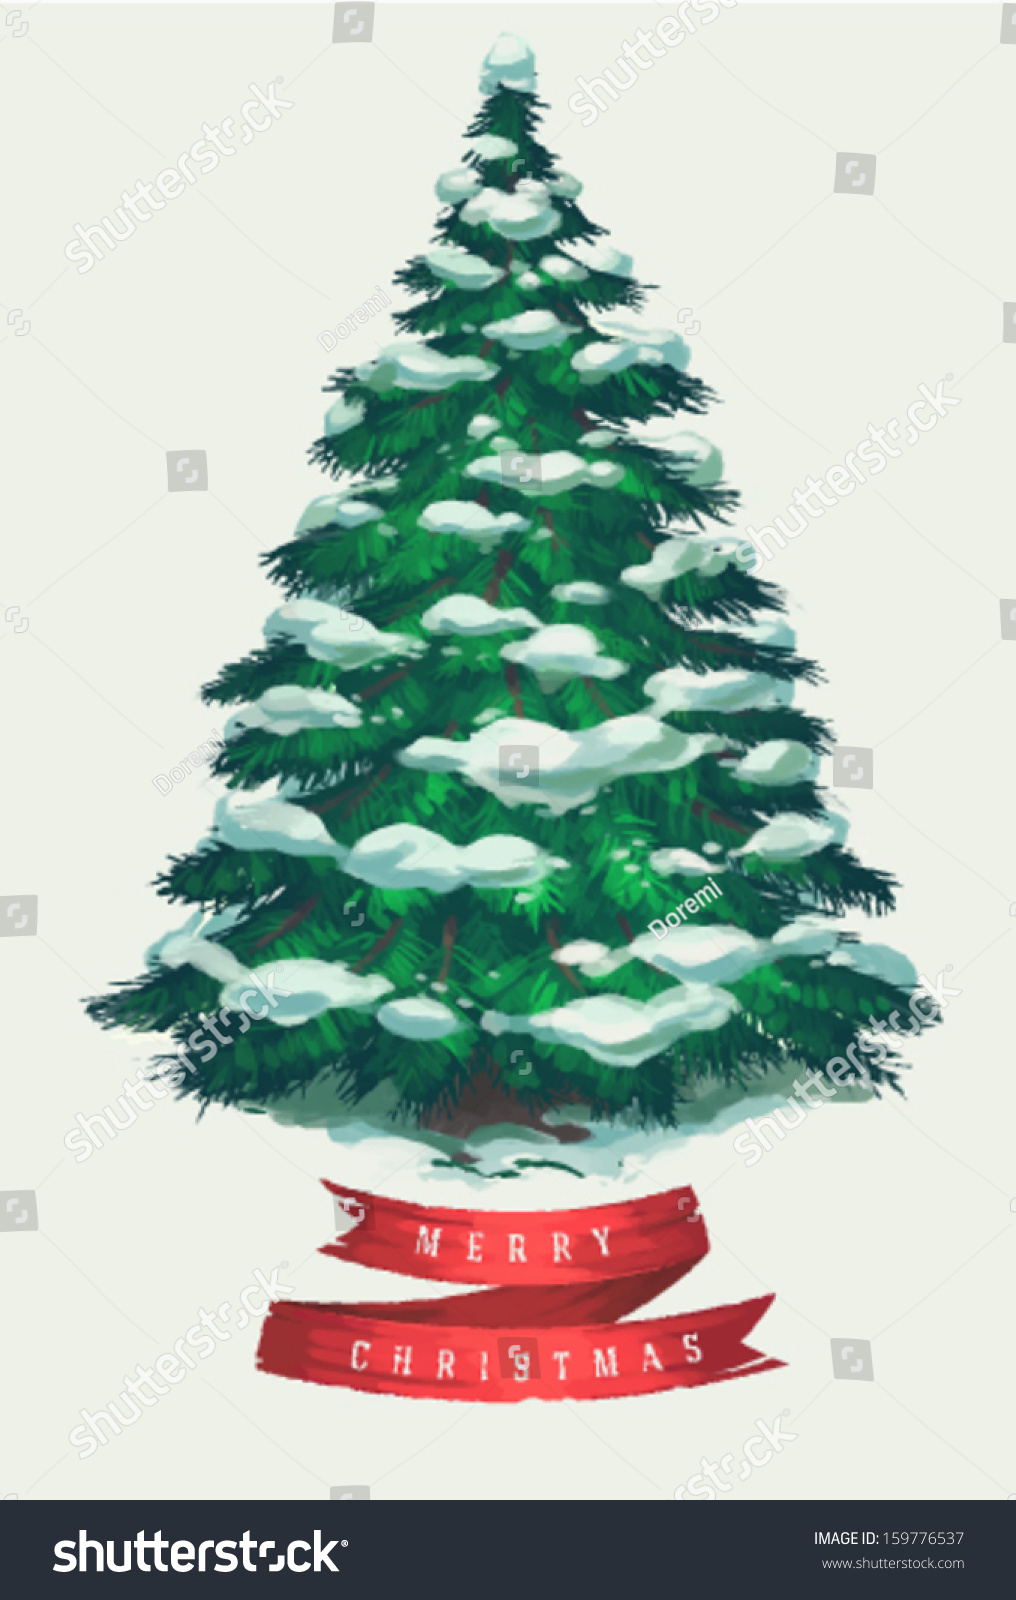 Christmas Tree Art.Vintage Christmas Tree Art Greeting Card Stock Vector